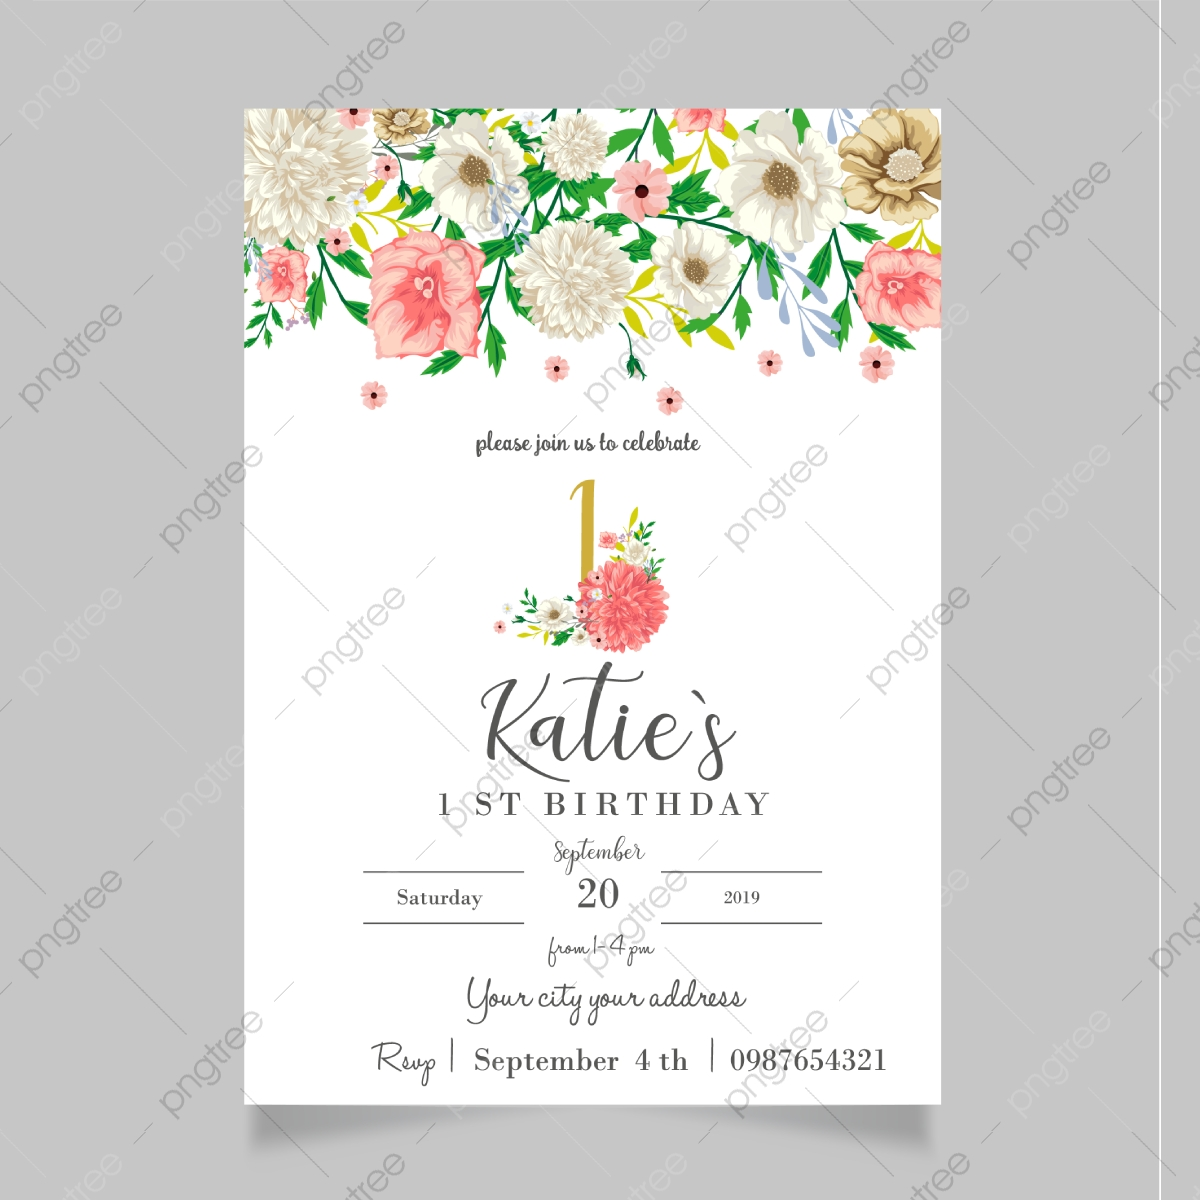 https pngtree com freepng baby birthday invitation templates 4774684 html